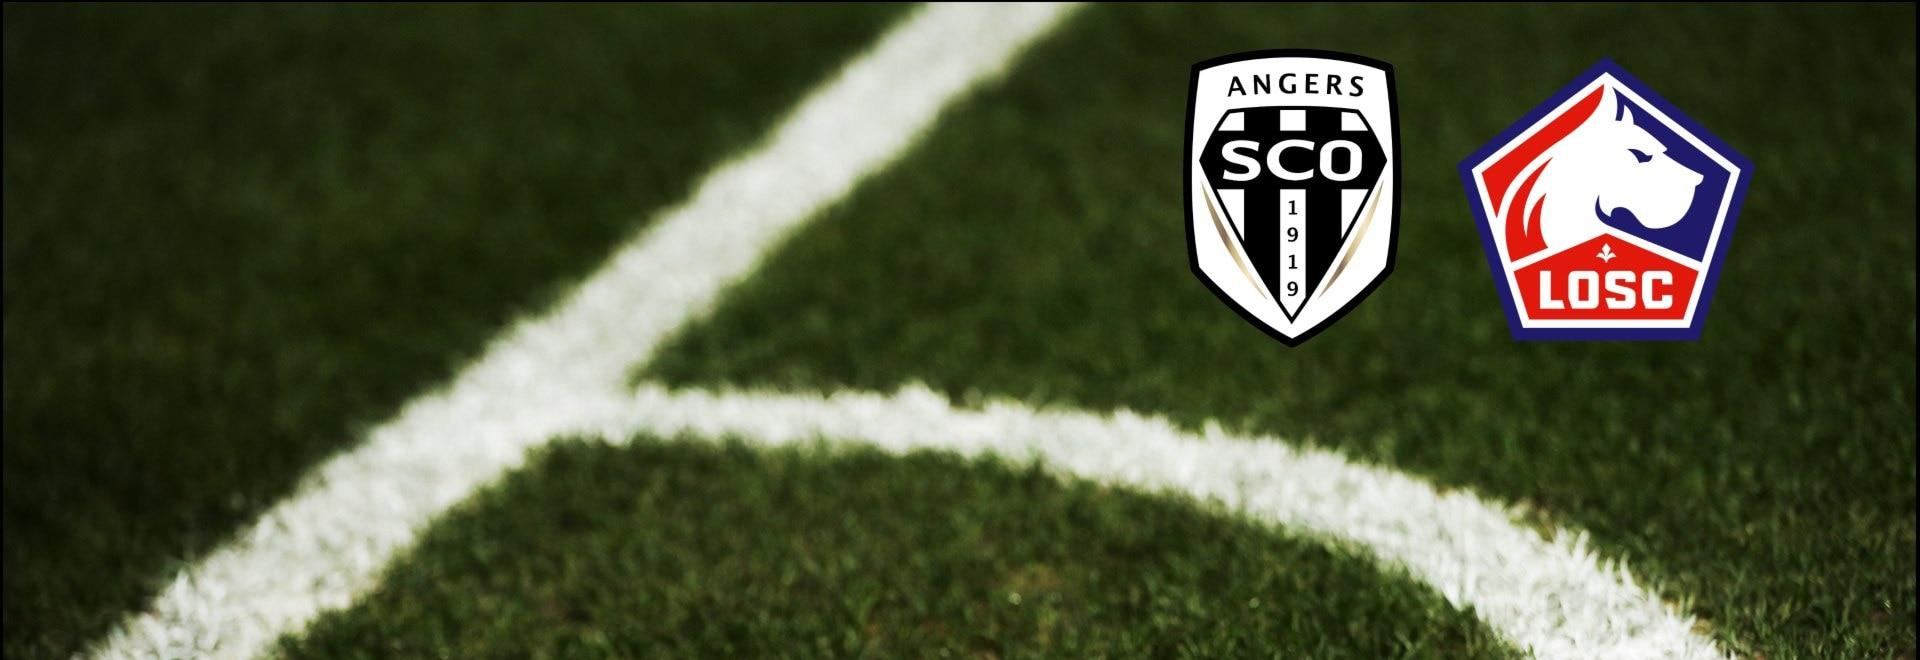 Angers - Lille. 38a g.